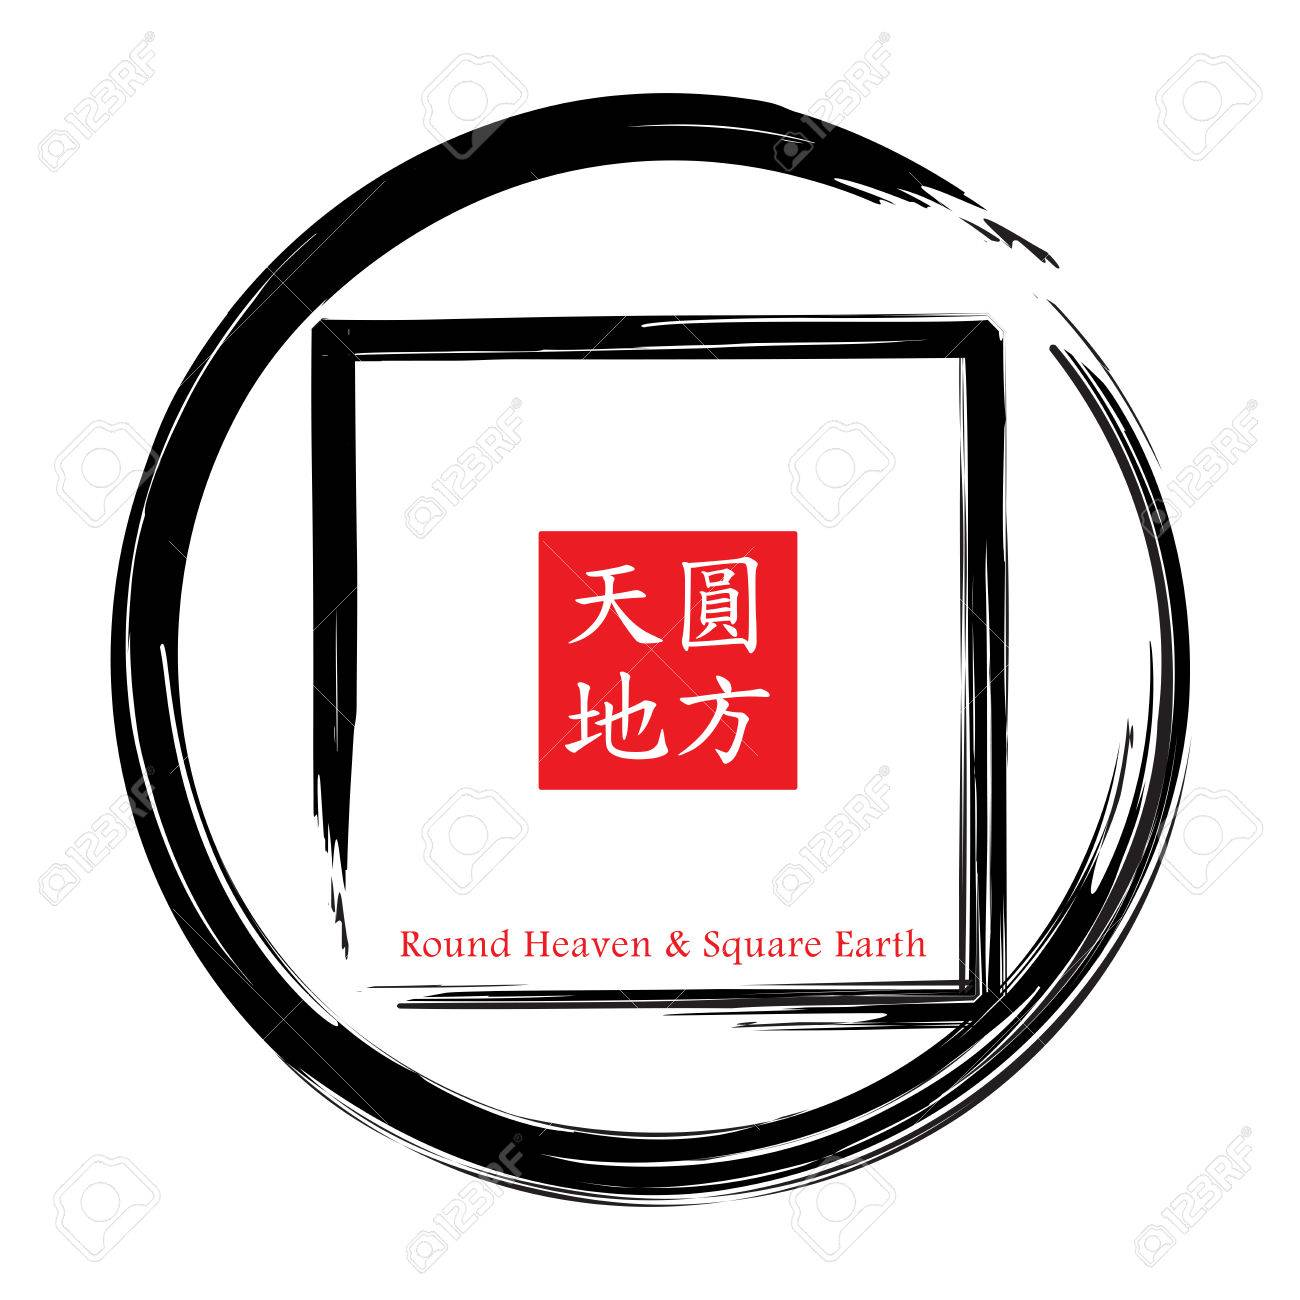 Round heaven square earth is common concept of chinese traditional round heaven square earth is common concept of chinese traditional architecture stock photo 24877733 biocorpaavc Gallery